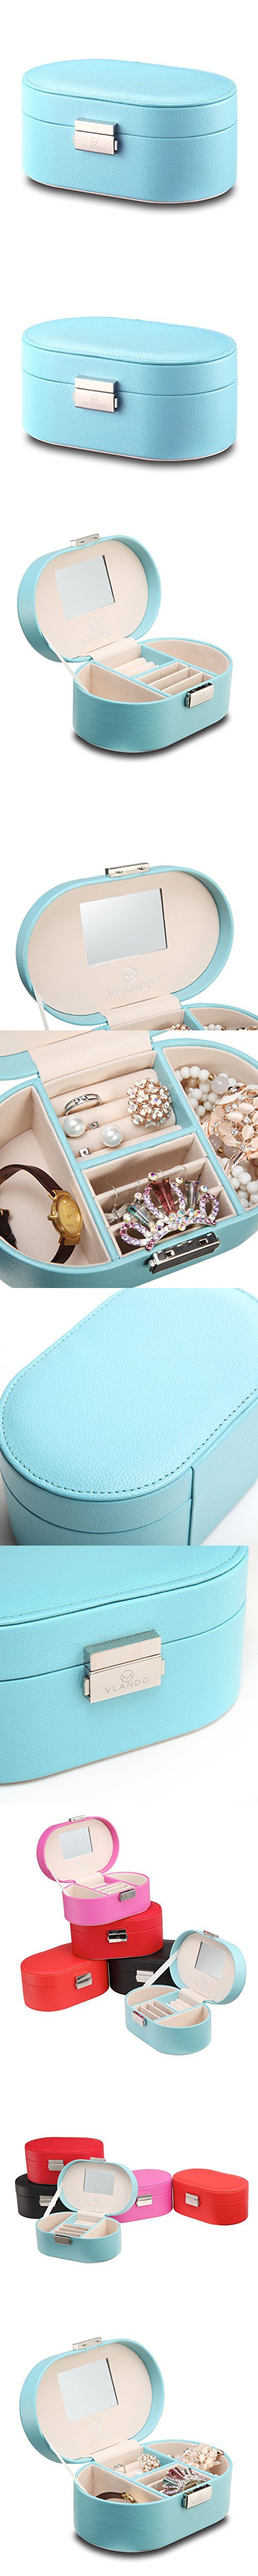 Vlando Small Faux Leather Mirror Travel Jewelry Box Organizer